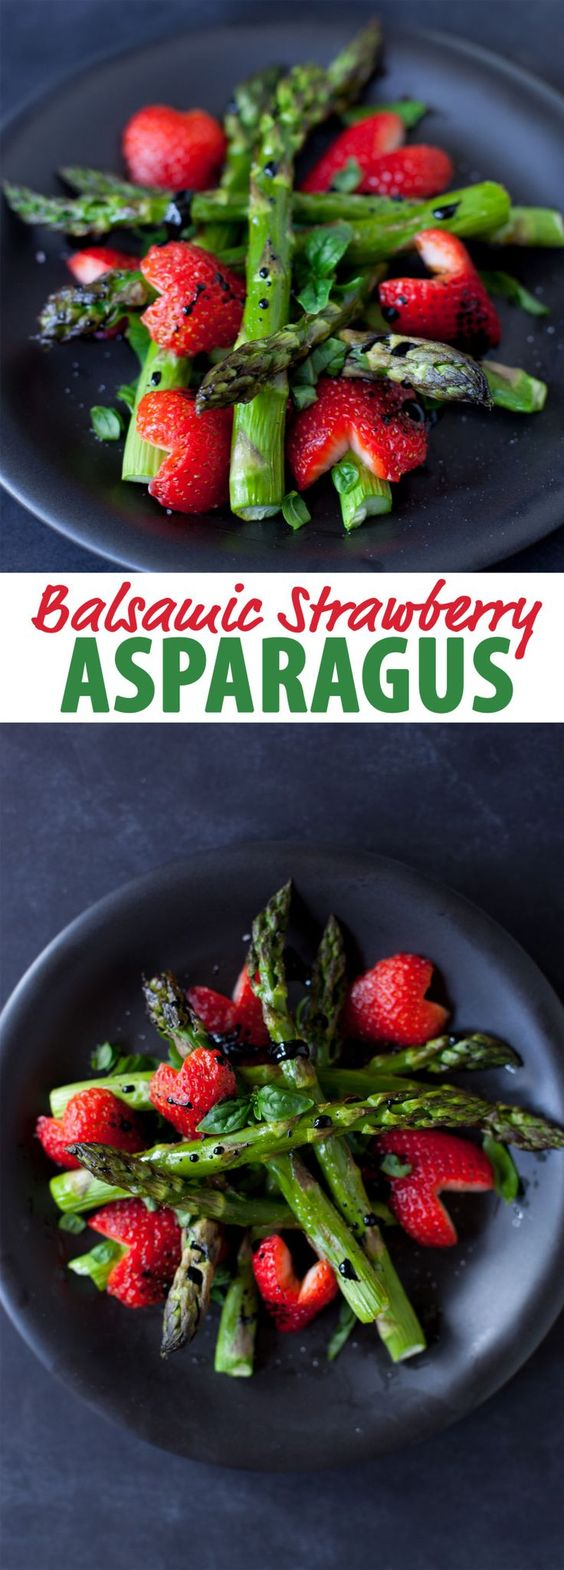 Balsamic strawberry asparagus recipe romantic dinner for Romantic valentine recipes for two